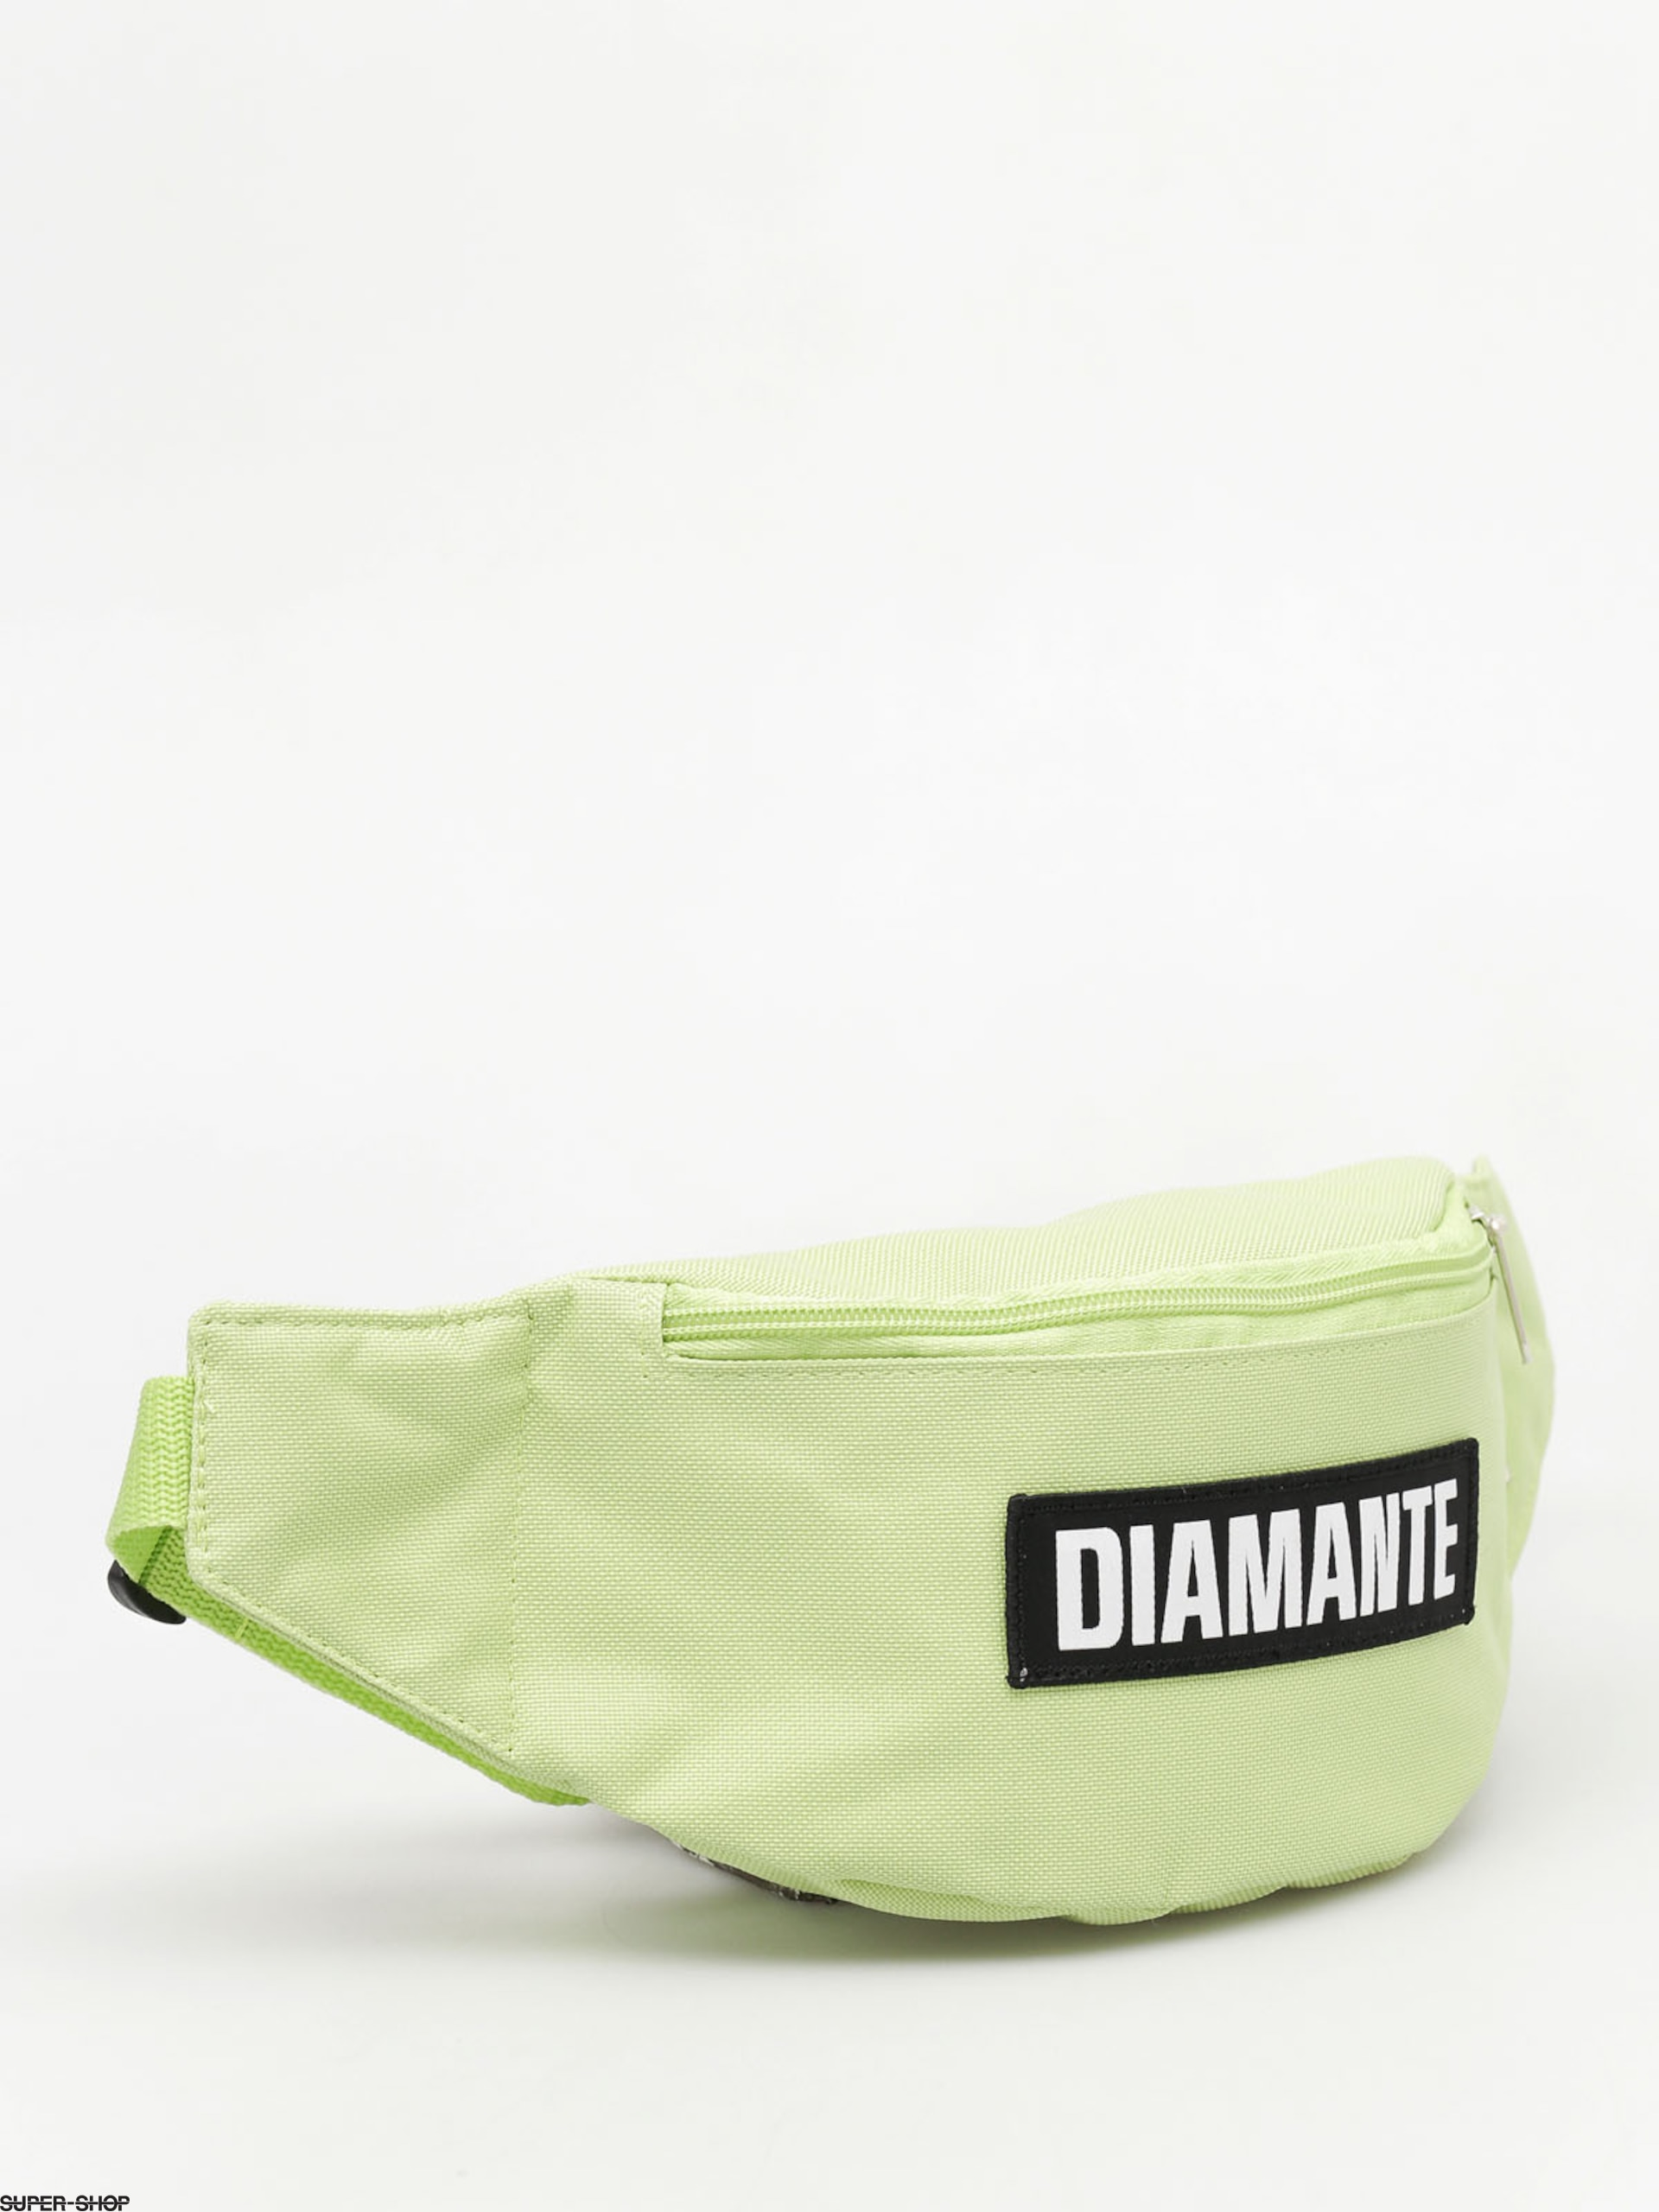 Diamante Wear Bum bag Black Logo (light green)